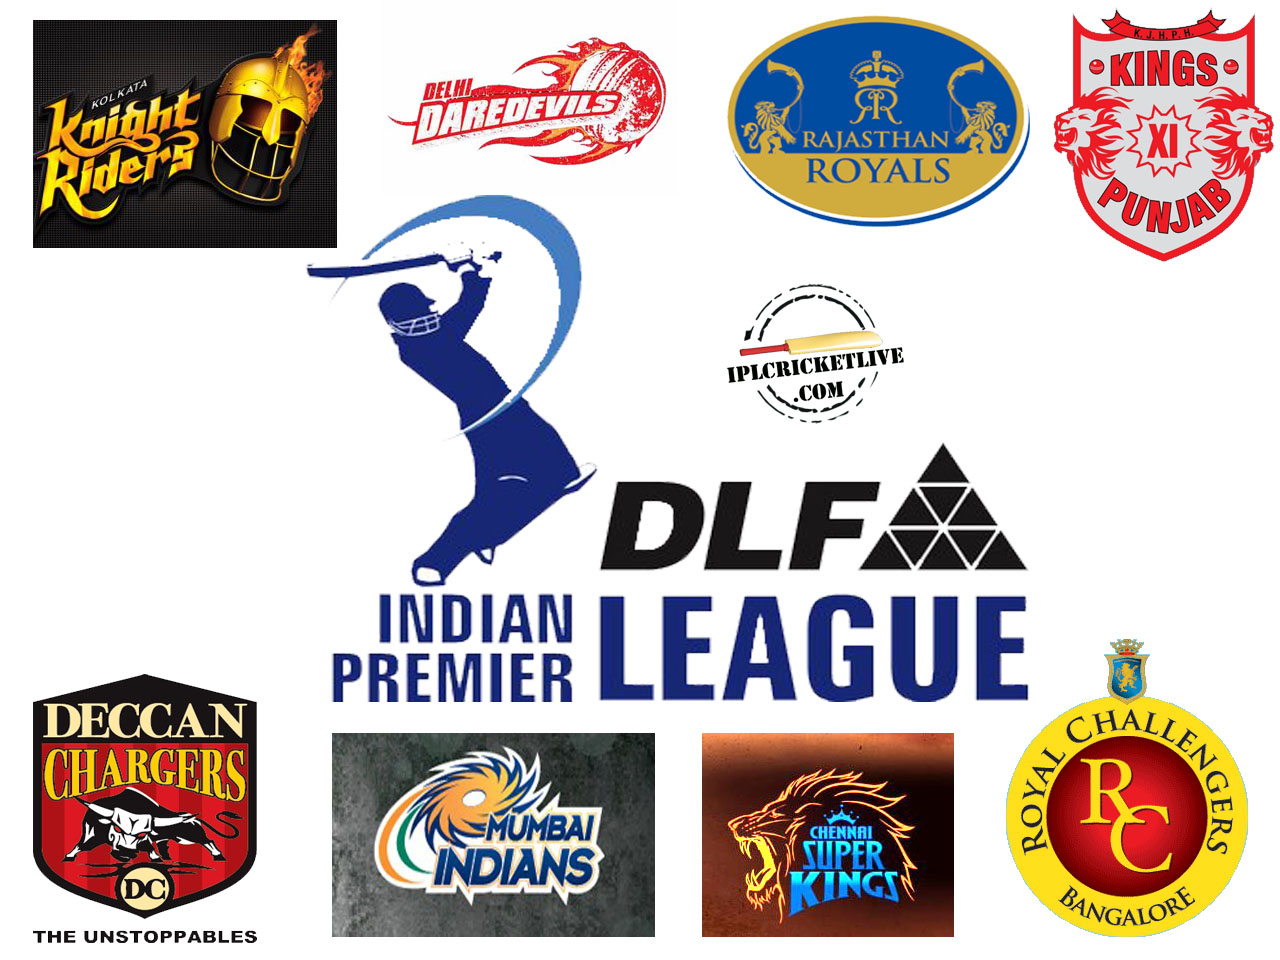 commercialization of indian premier league Branding opportunities in sports & lifestyle events  indian premier league,  which has irked many purists on account of too much commercialization of gentlemen.